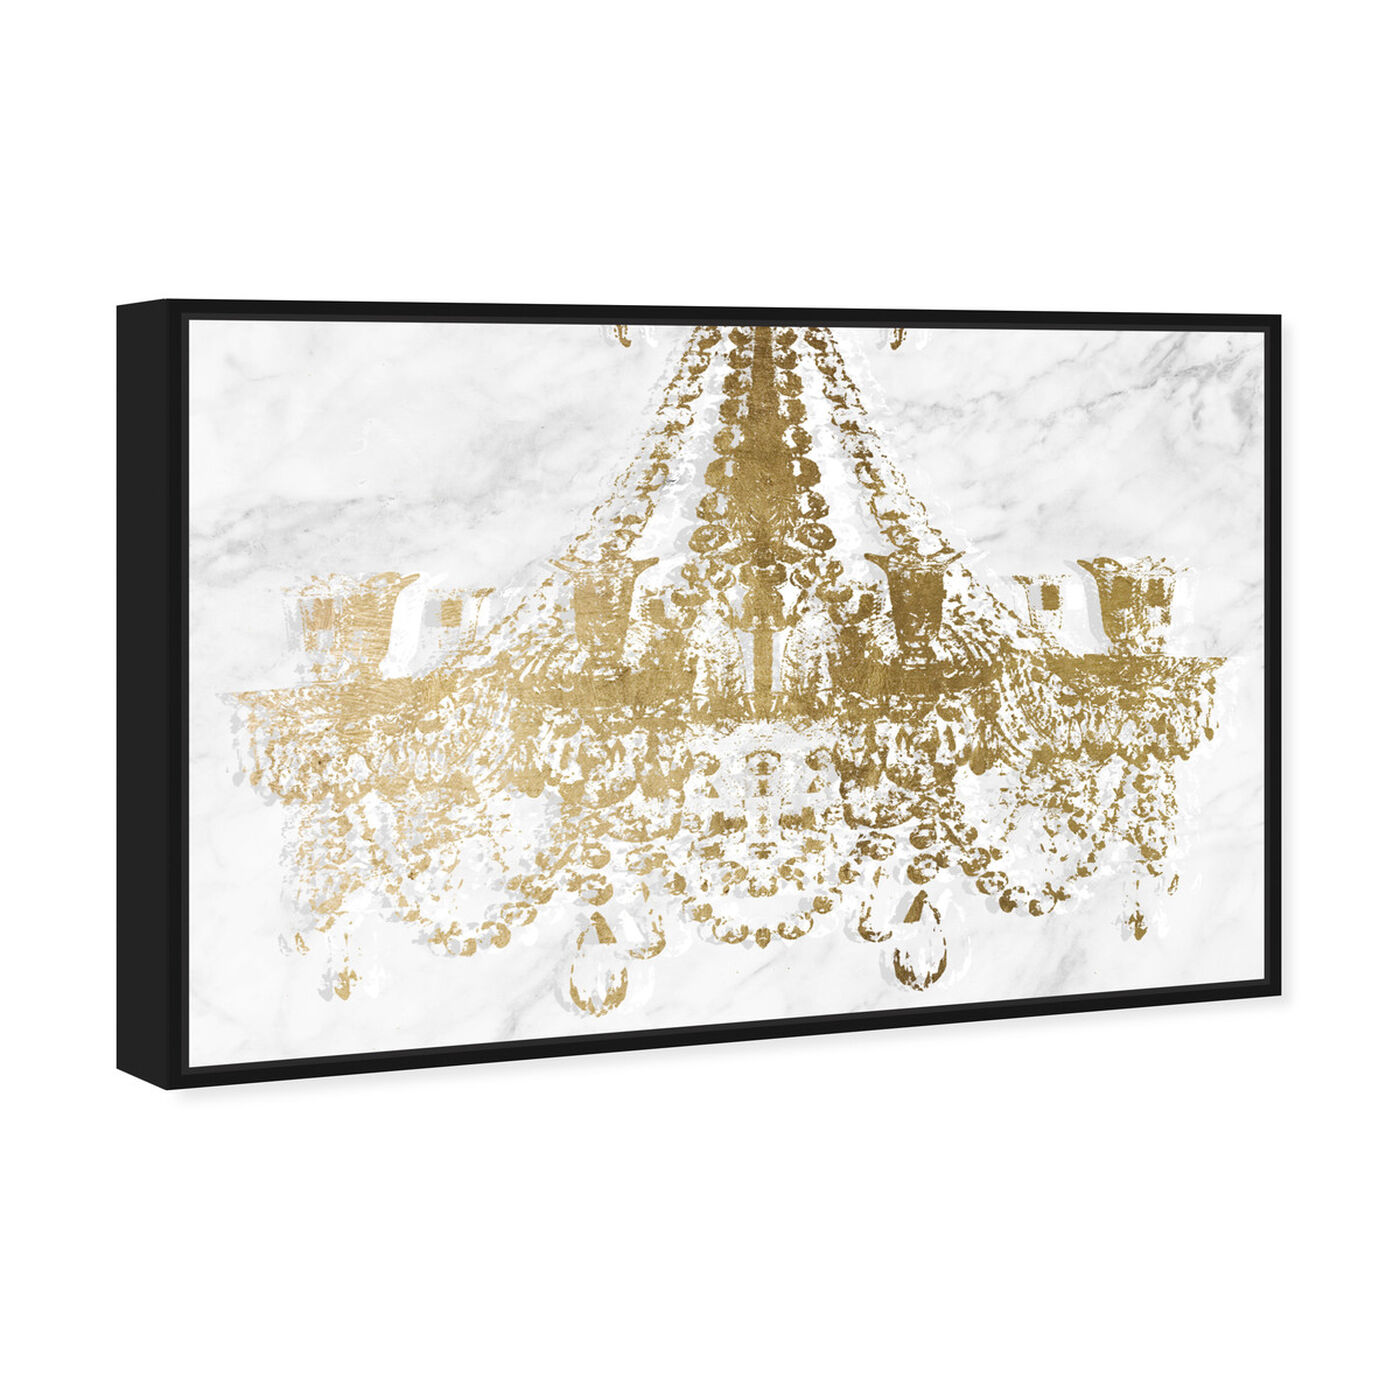 Angled view of Dramatic Entrance Marble and Gold featuring fashion and glam and chandeliers art.